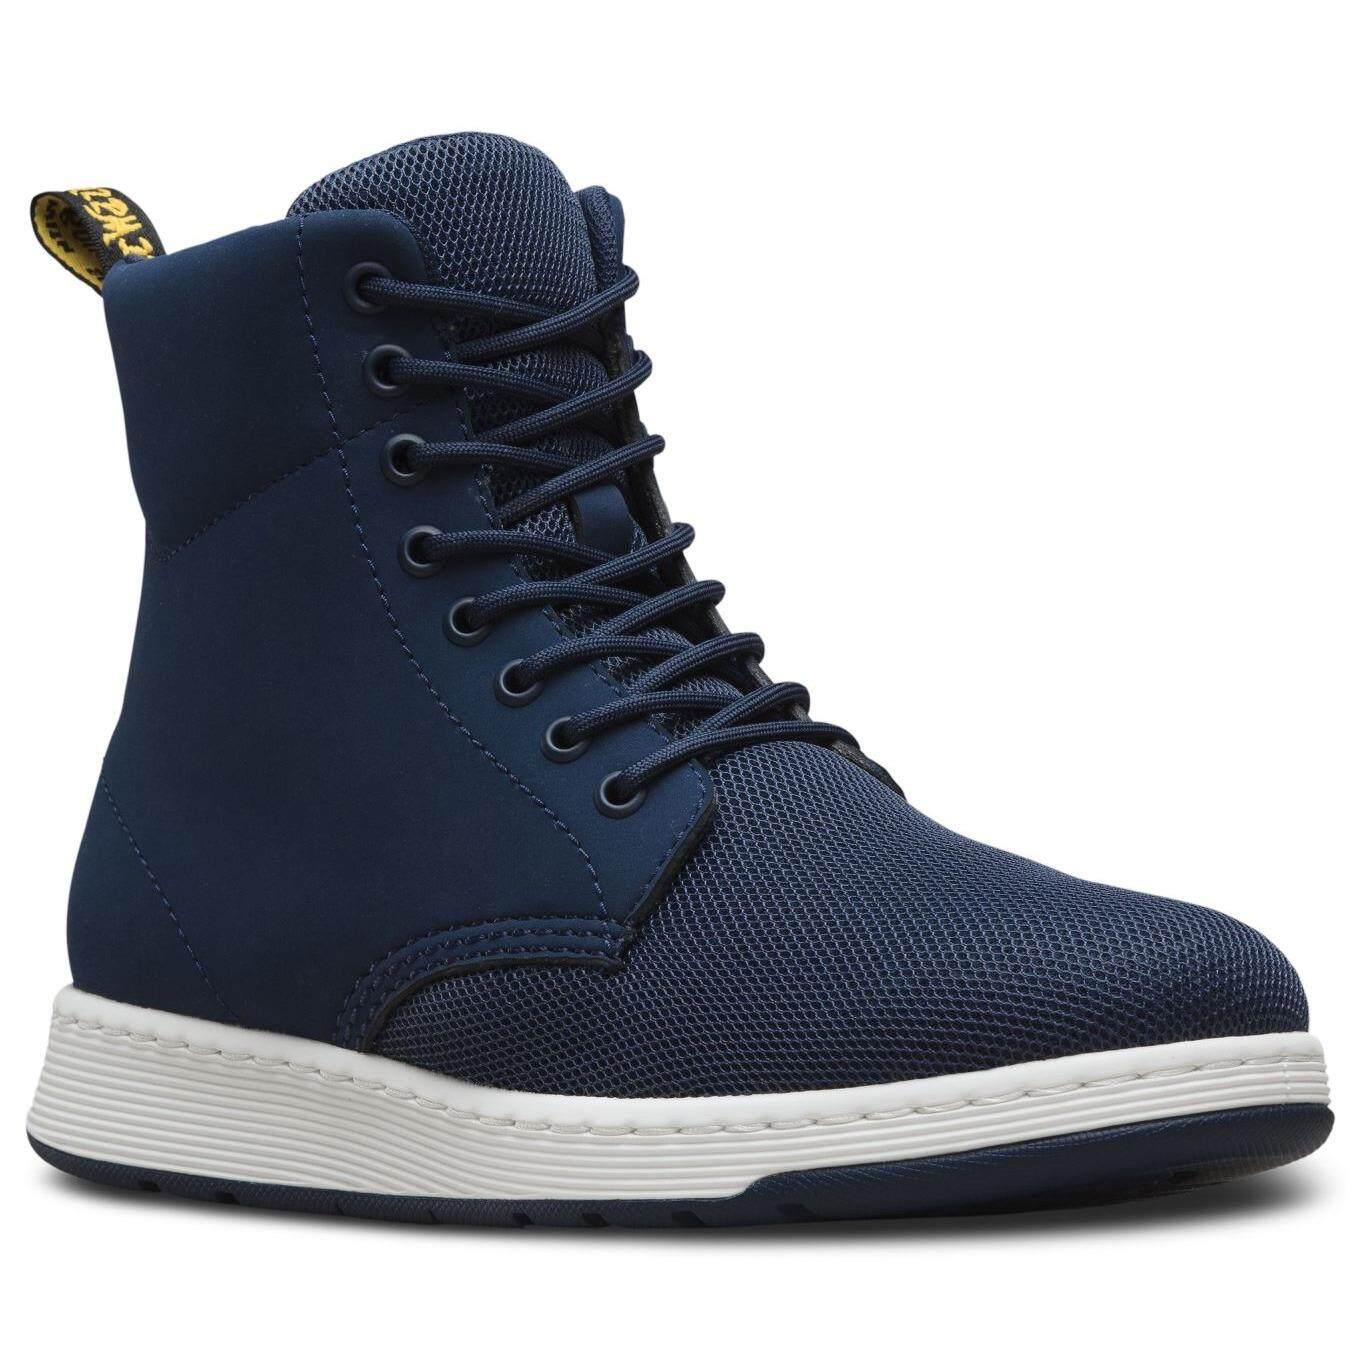 9977448e40 Dr Martens - Buy Dr Martens at Best Price in Malaysia | www.lazada ...